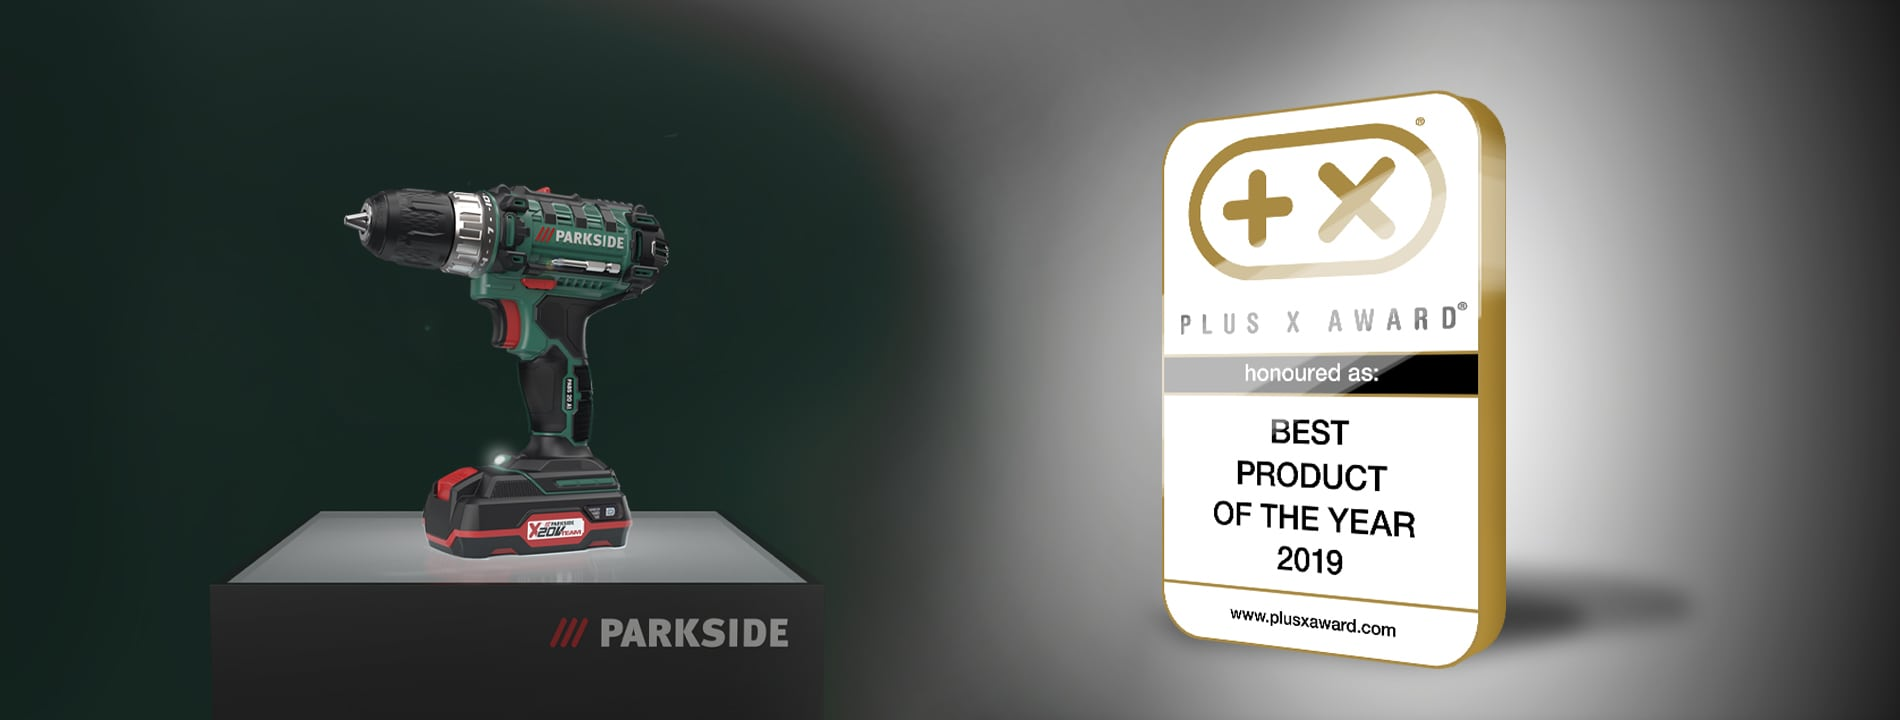 parkside_plusxaward2019_projekter_industrial_design